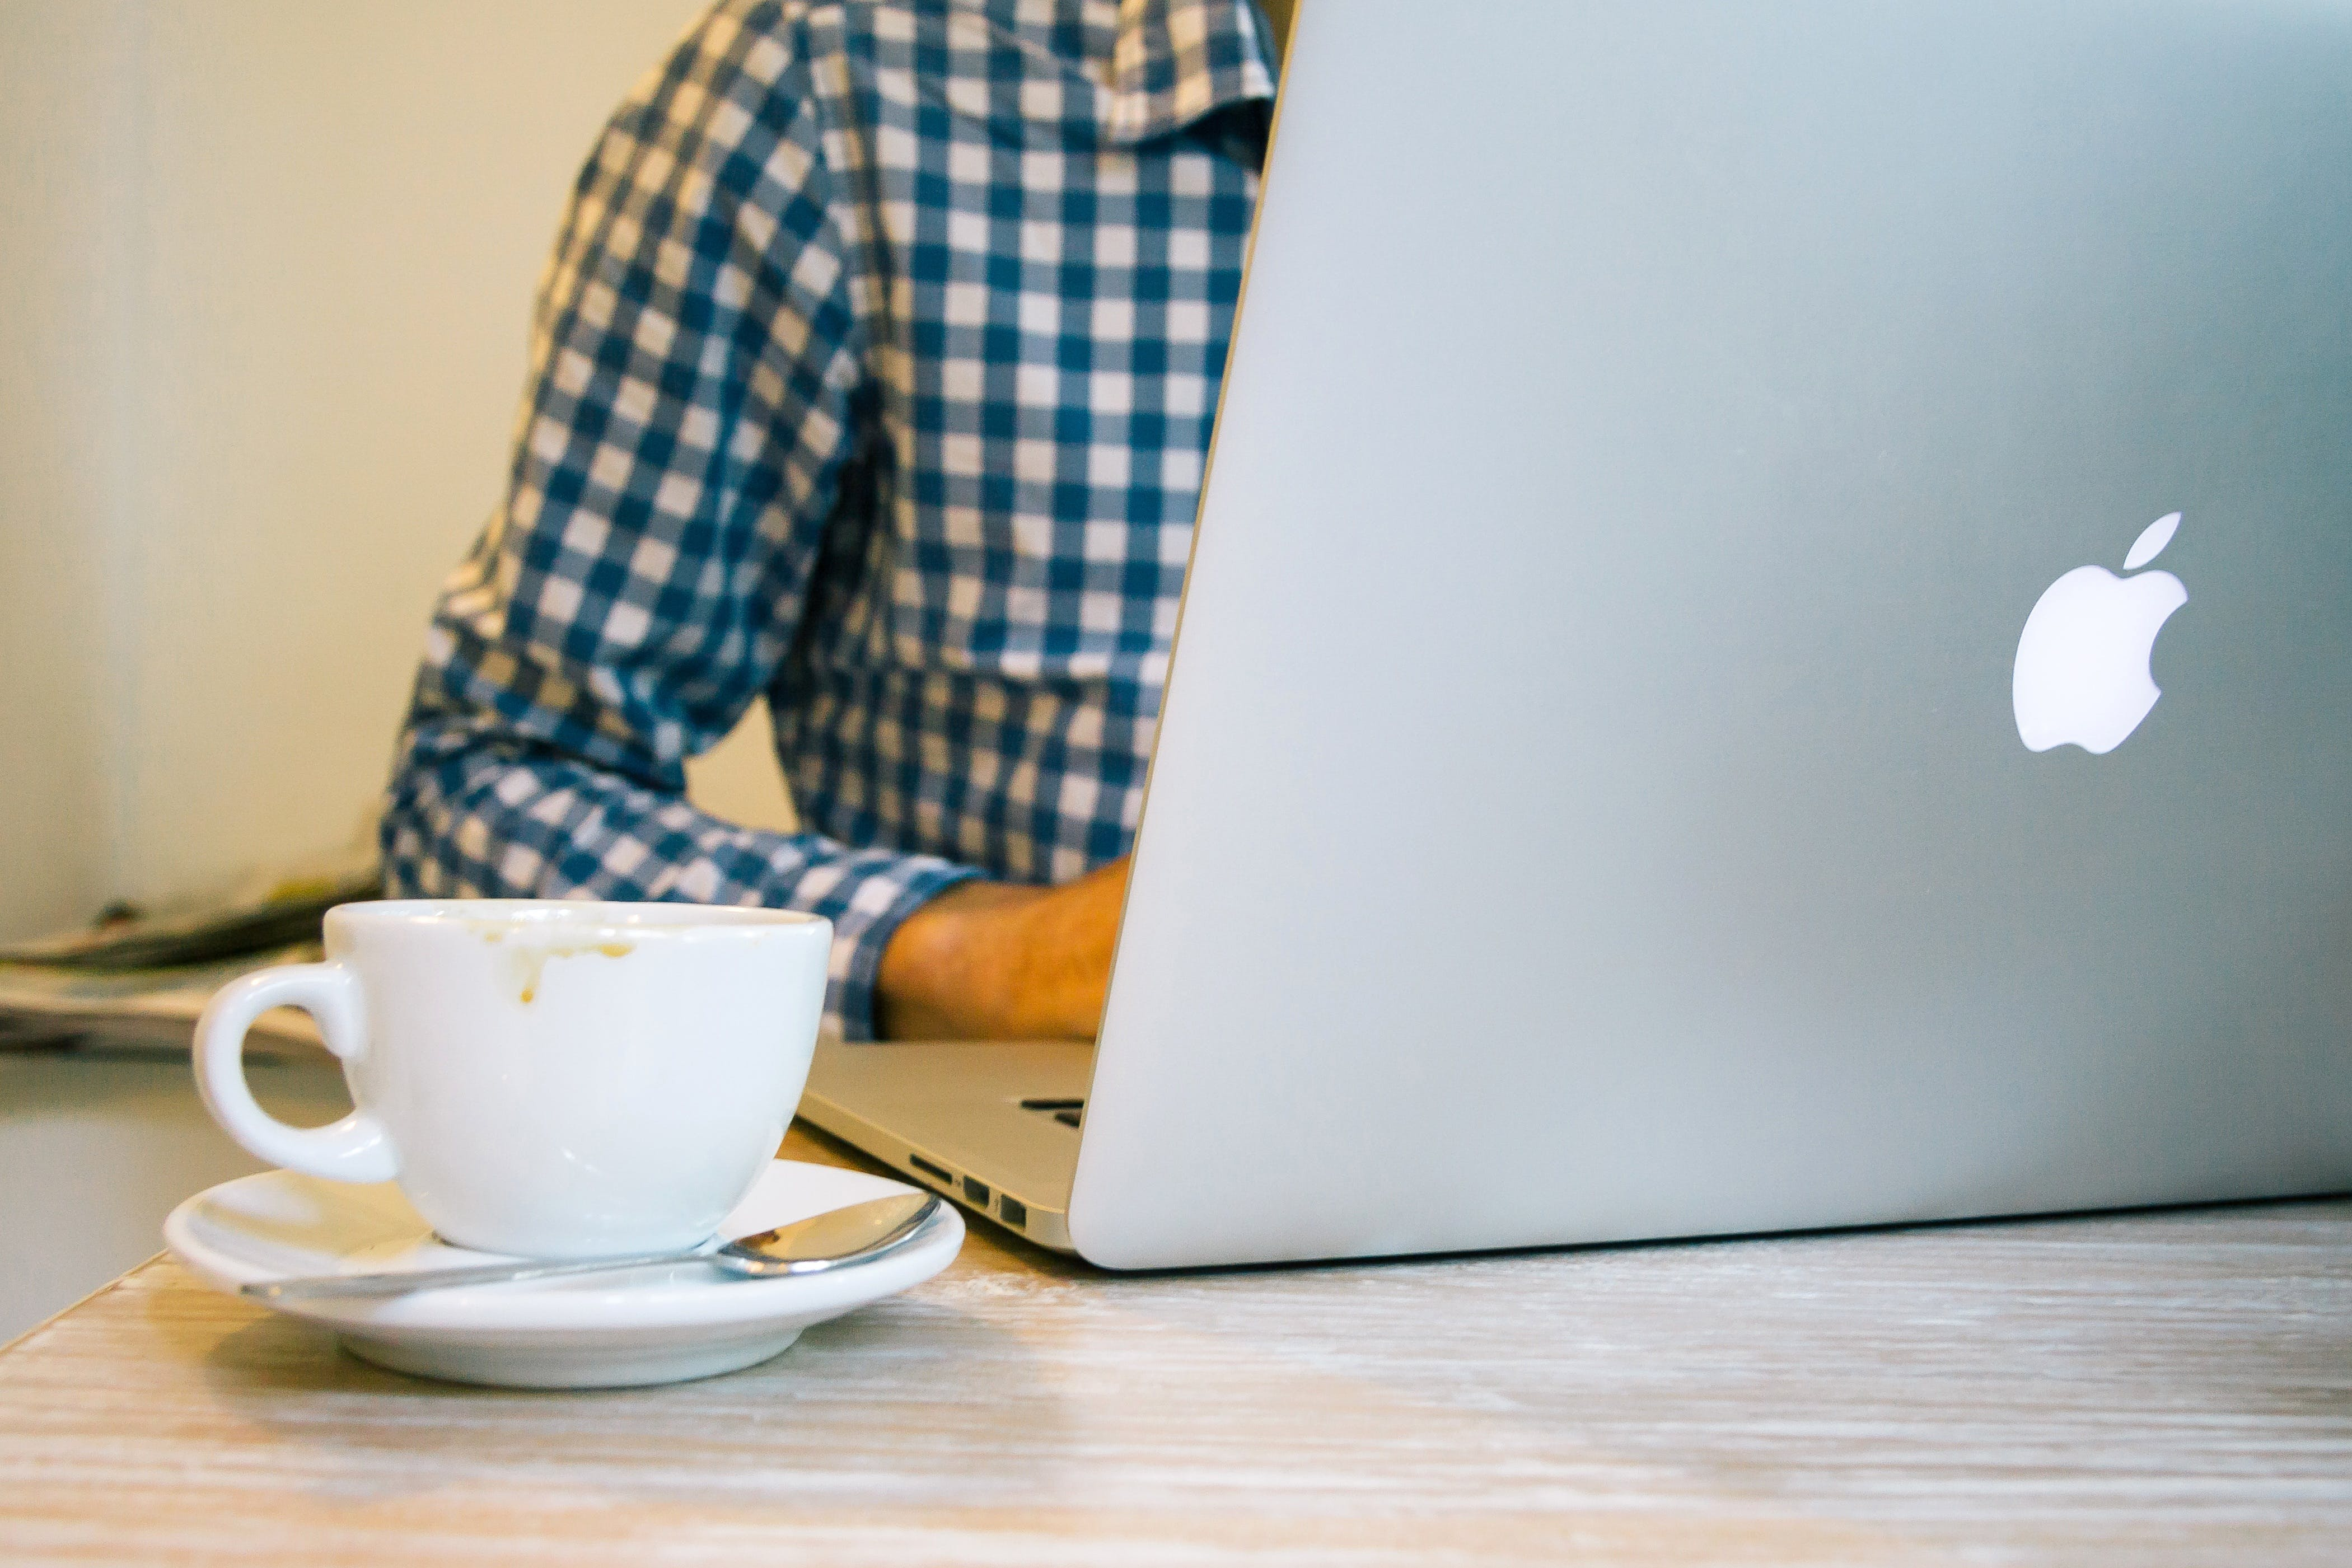 White Ceramic Teacup Beside Silver Macbook on Table